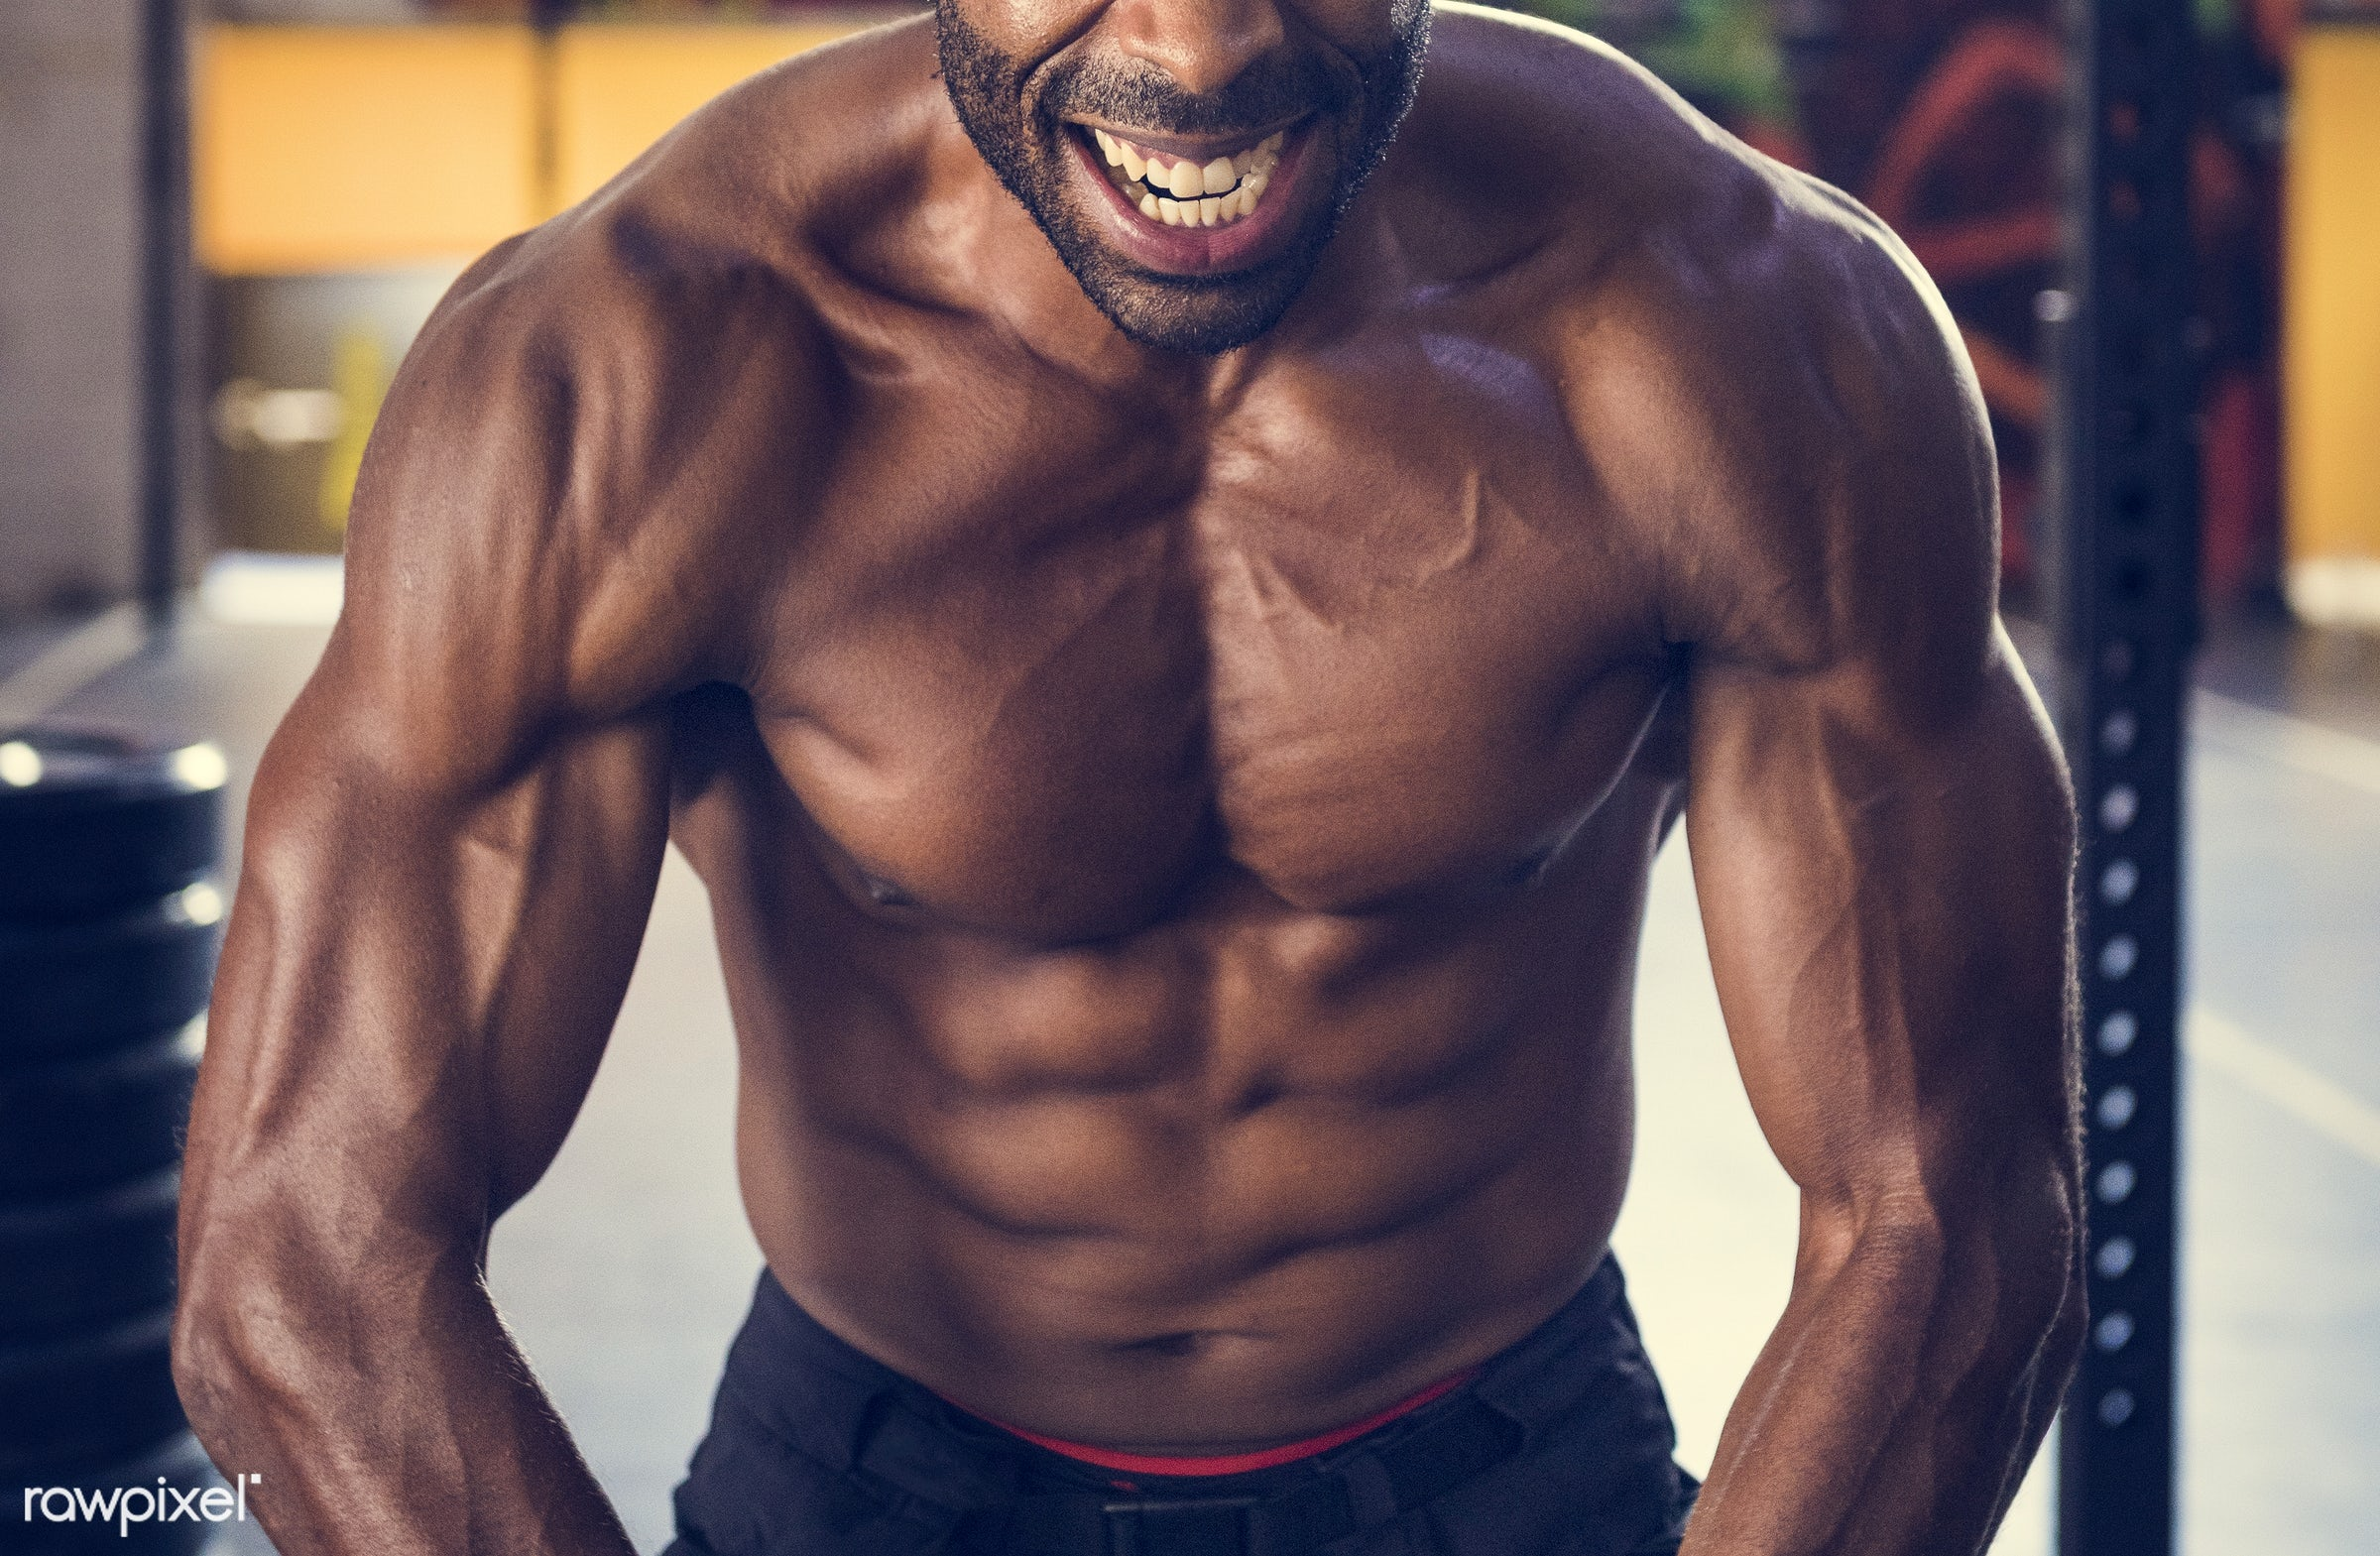 At the gym - achievement, active, activity, african descent, athlete, athletic, attractive, body, buff, fit, fitness, focus...